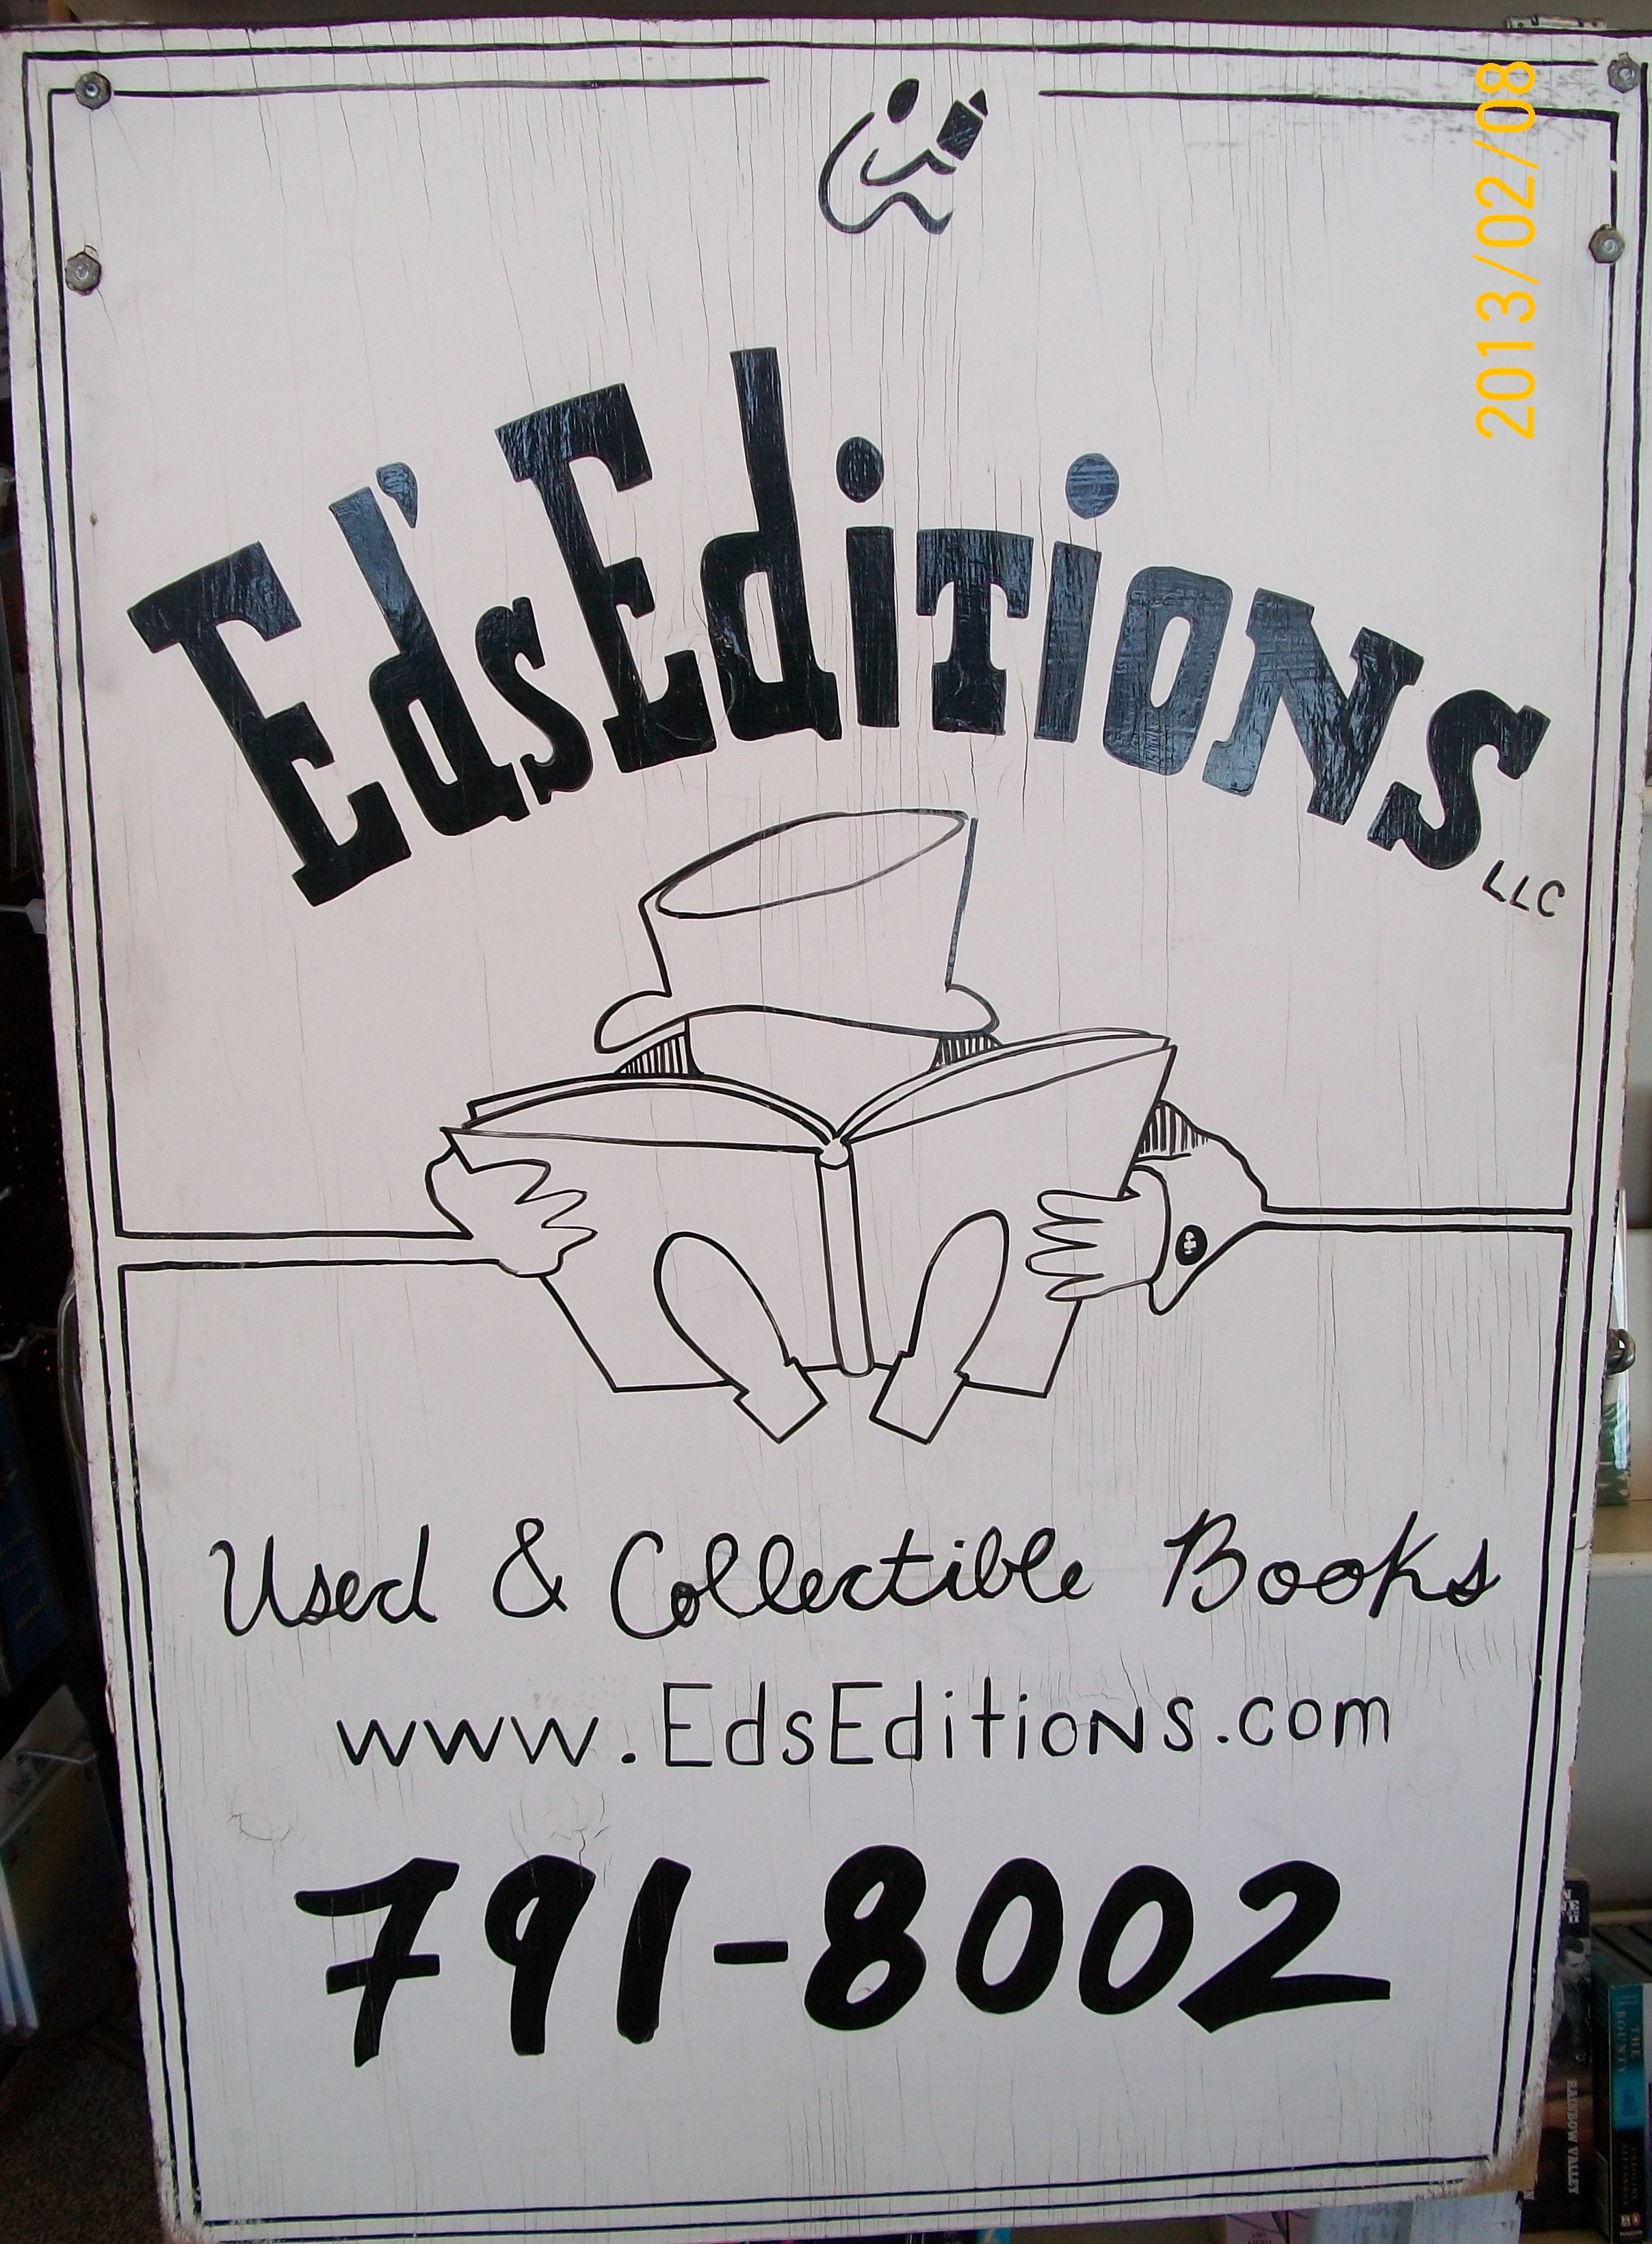 Ed's Editions